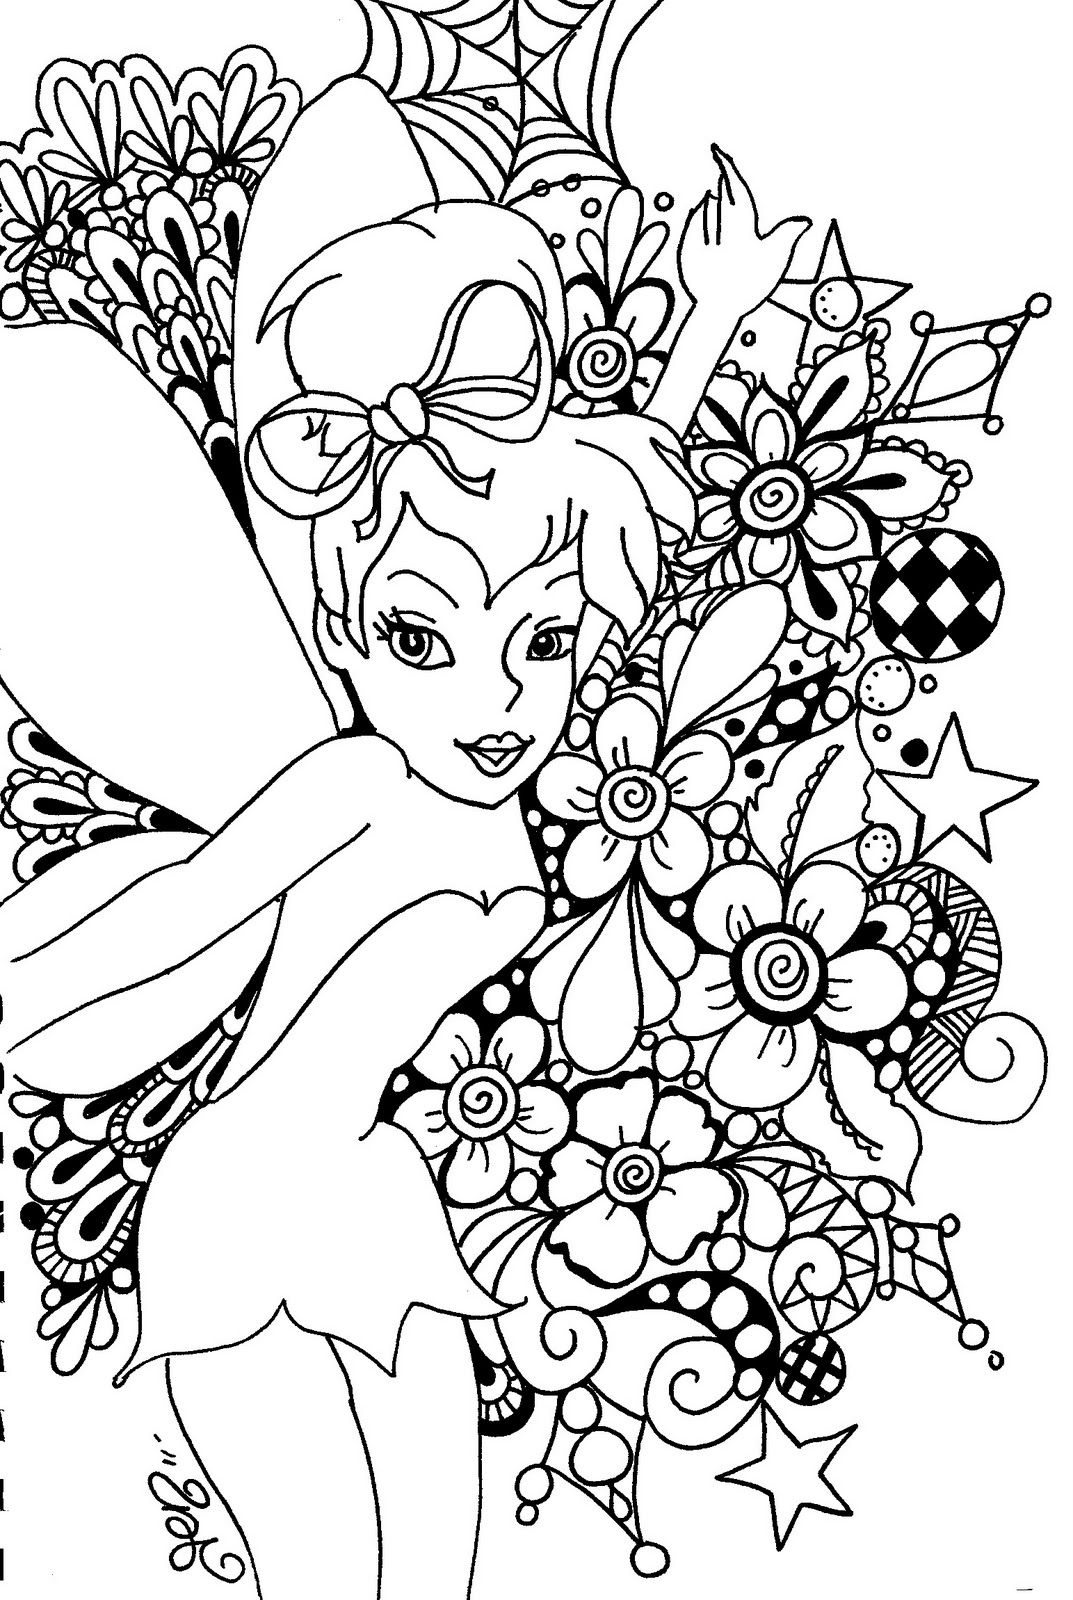 Fairy Coloring Pages Tinkerbell Coloring Pages Fairy Coloring Pages Disney Coloring Pages